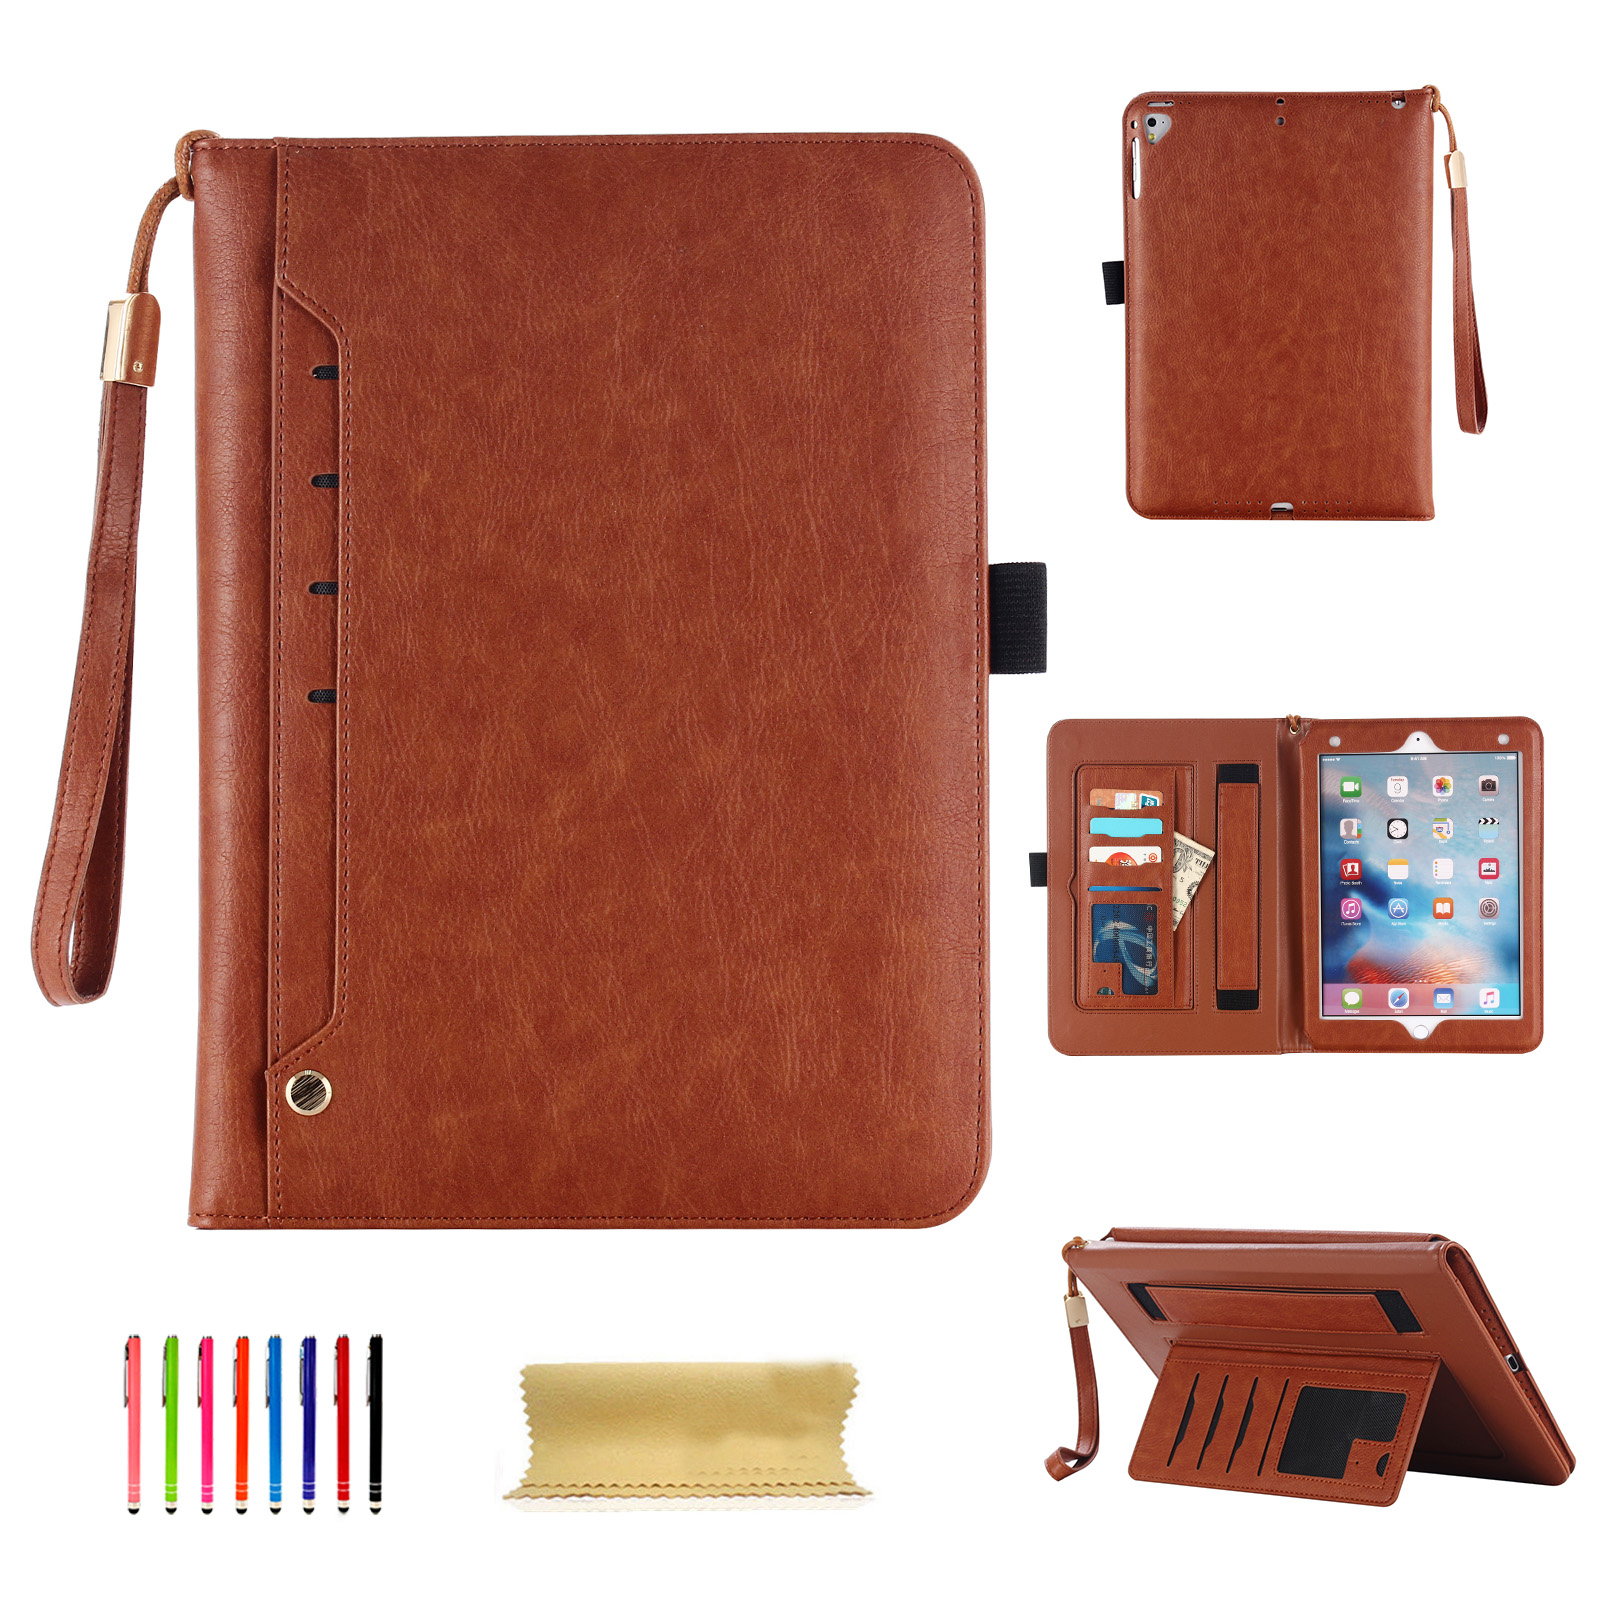 Goodest Premium PU Leather Folio Retro Business Smart Stand Cover Case for 7.9 inch Apple iPad Mini 1 2 3 4 with Auto Sleep/Wake Function & Hand Strap,Document Pocket,Pencil Holder,Elastic Hand, Brown